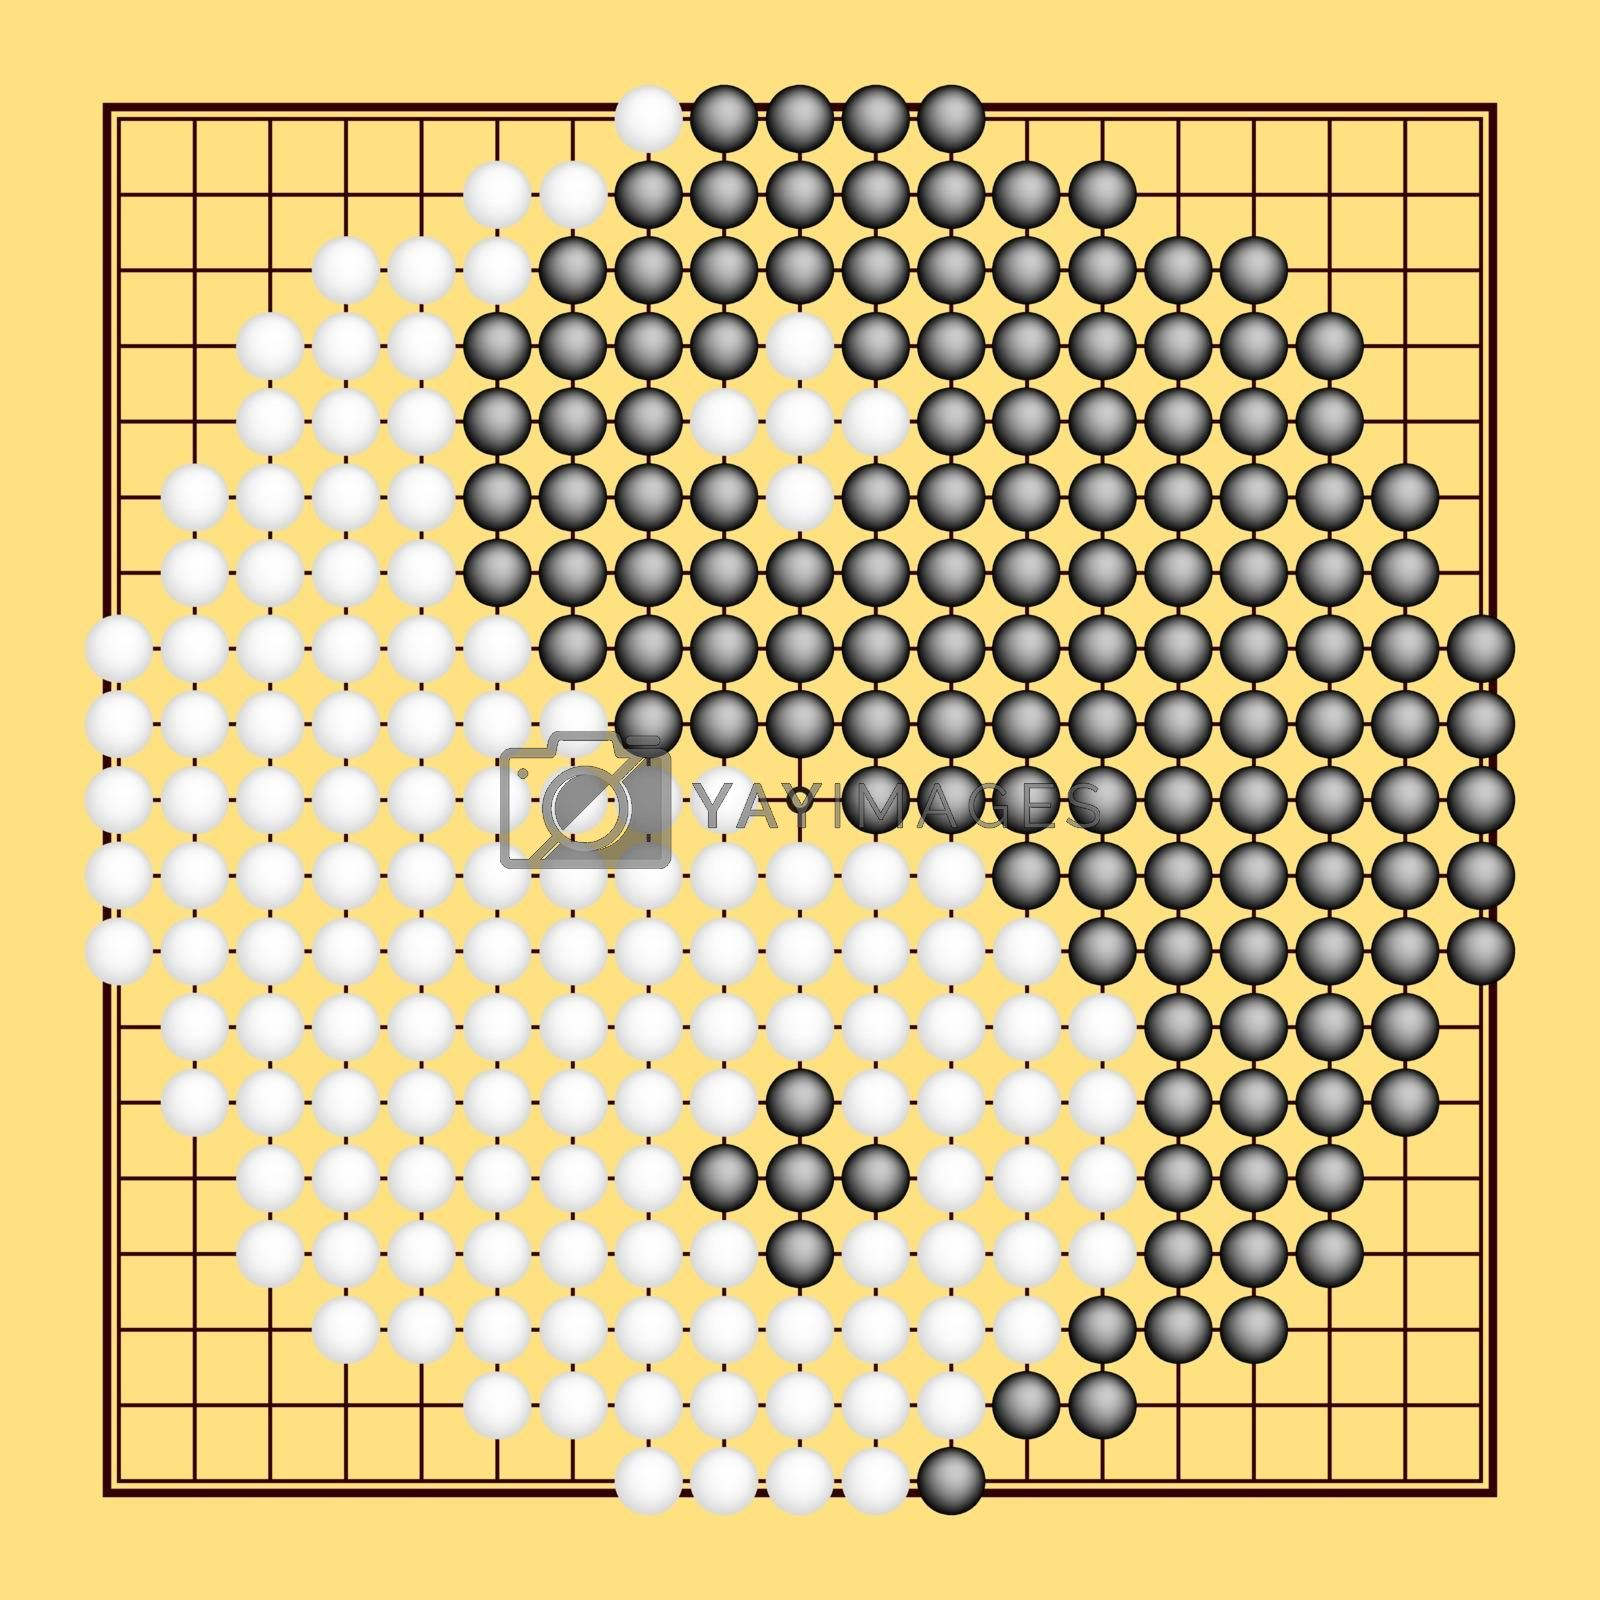 Vector Go game or Weiqi (Chinese board game) with yin yang symbol